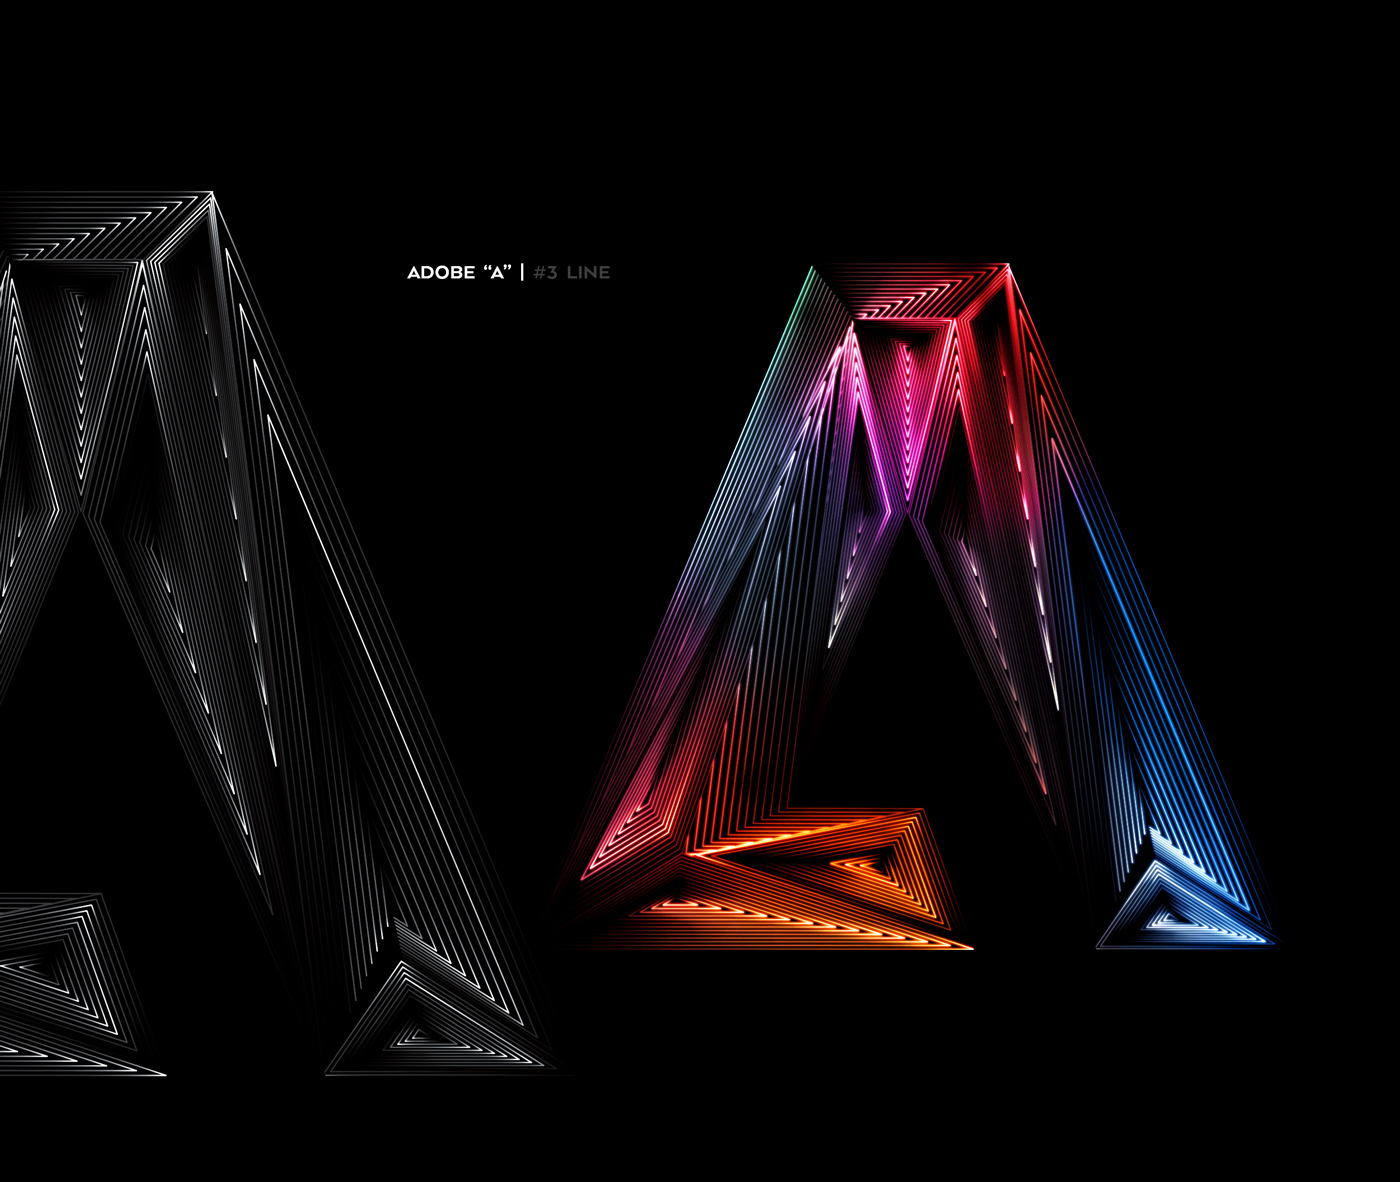 Graphic Design: Adobe Light and Shadow Explorations